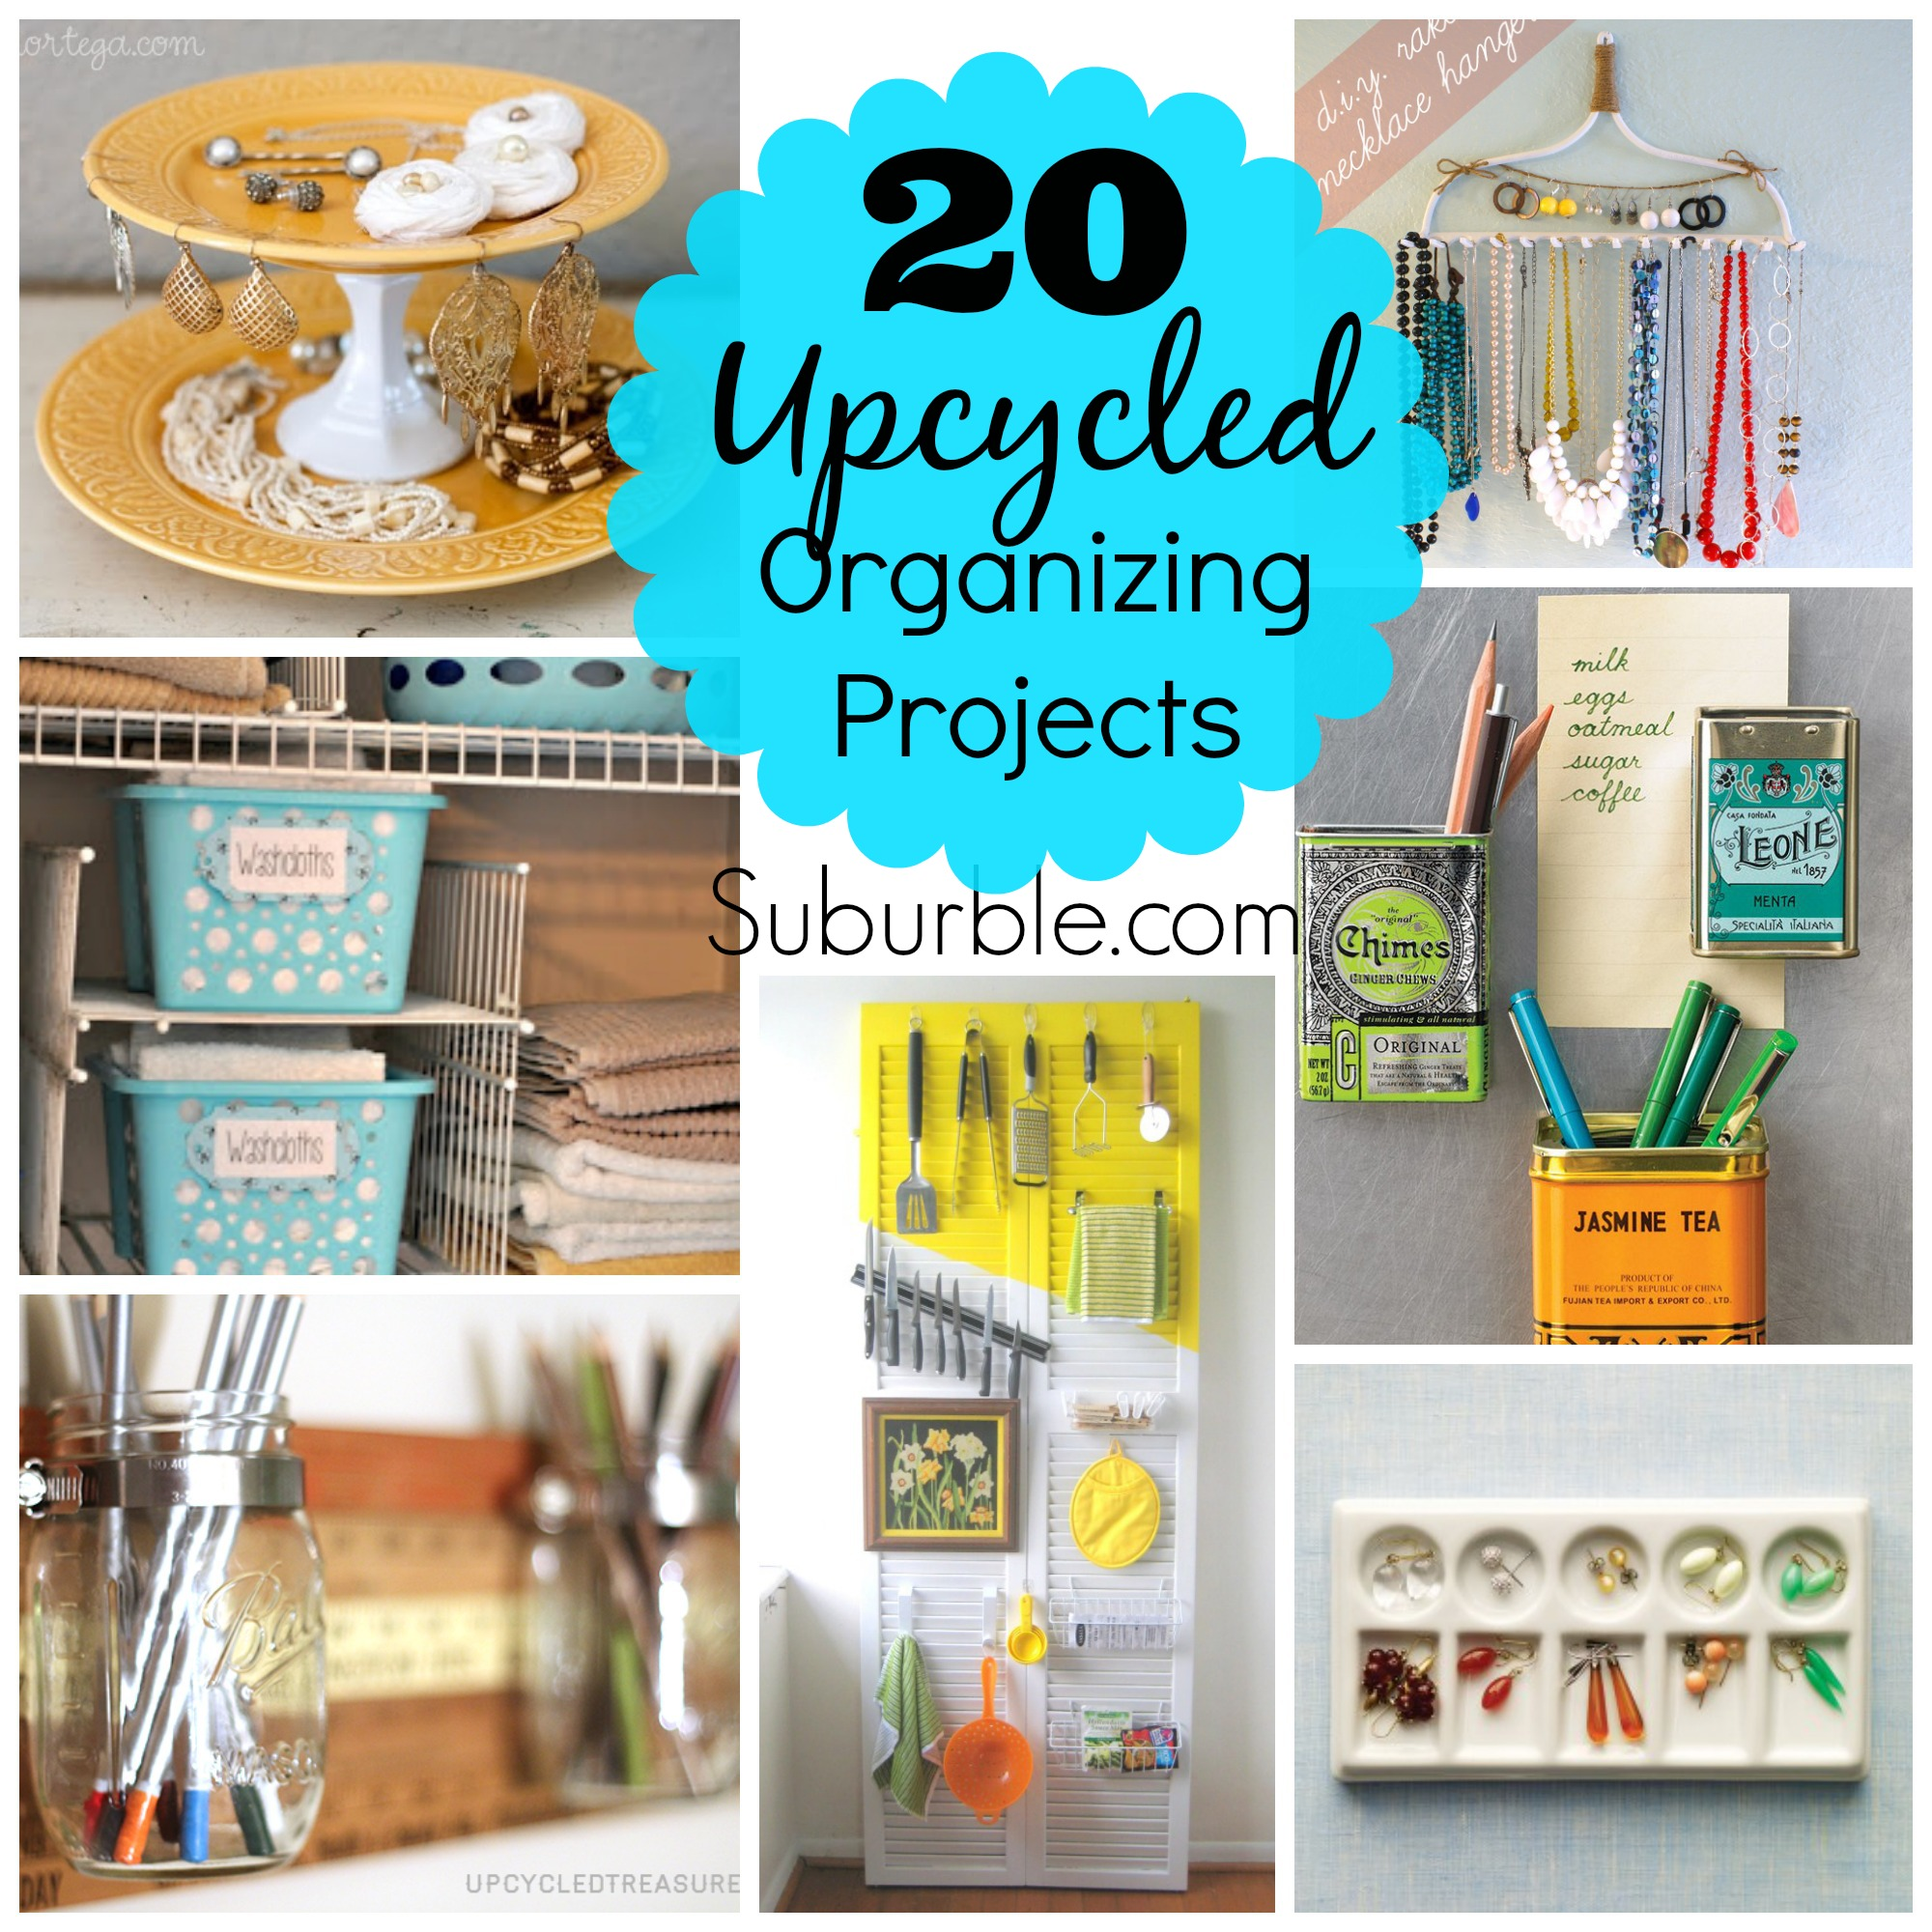 20 Awesome Upcycled Organizing Projects